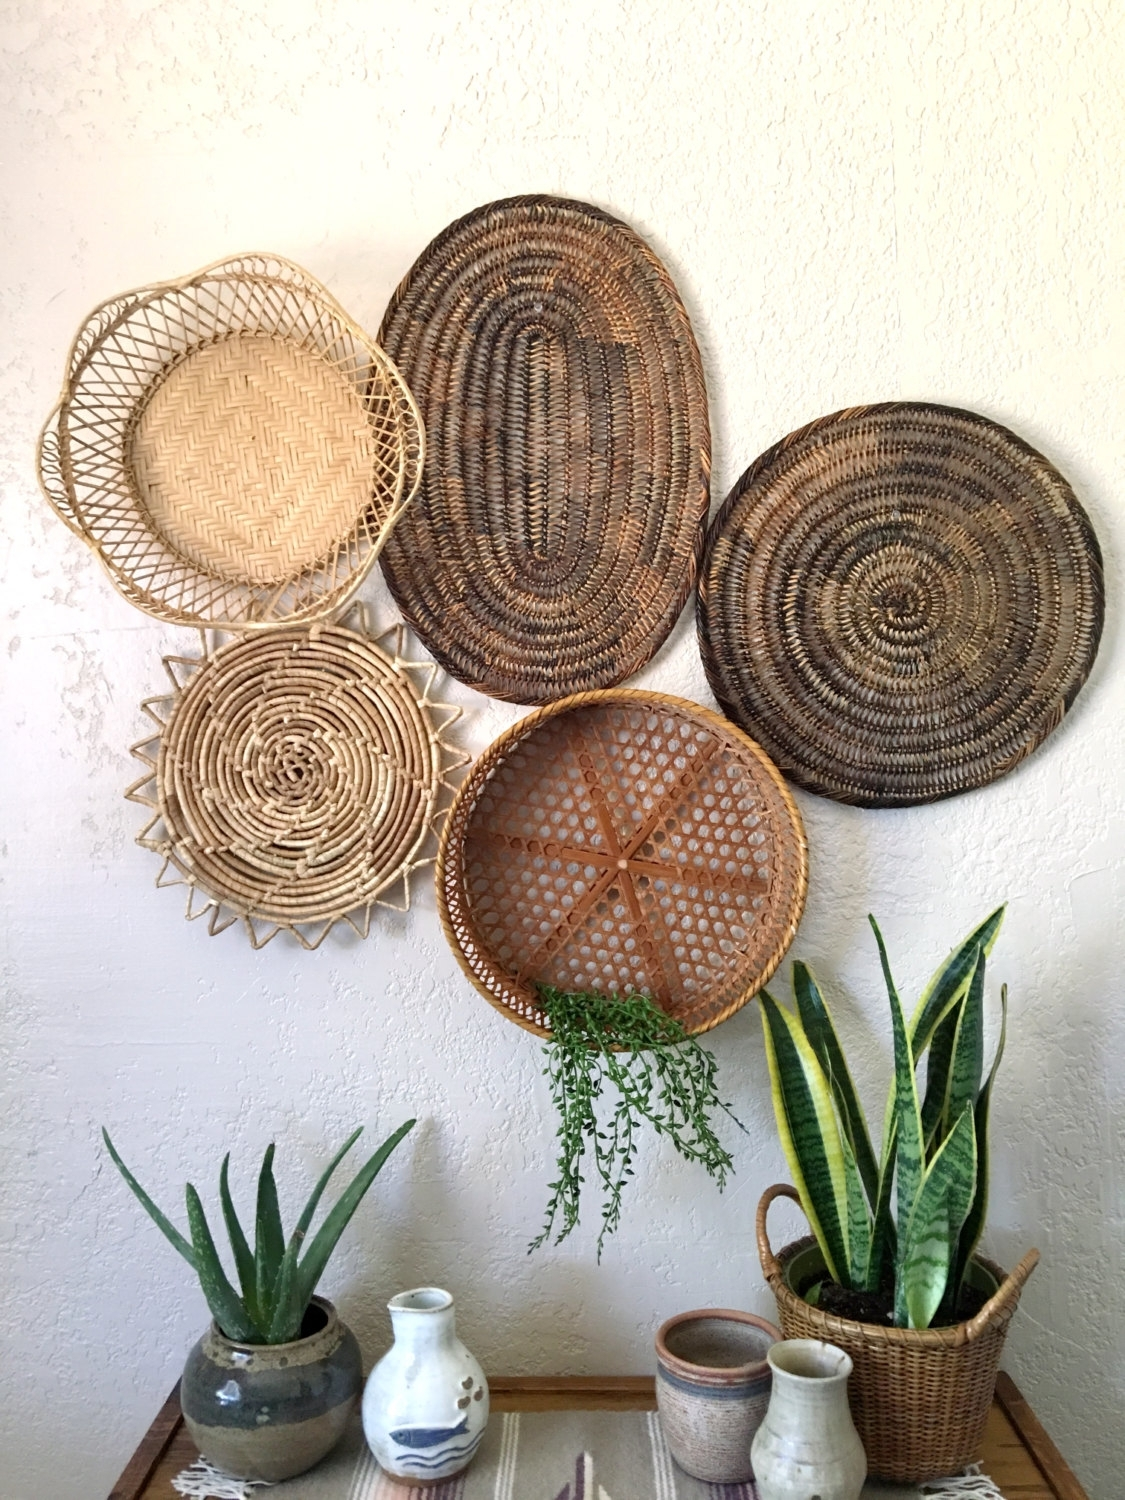 Vintage Oval Brown Woven Wicker Basket / Trivet / Placemat, Woven With Most Popular Woven Basket Wall Art (View 13 of 20)